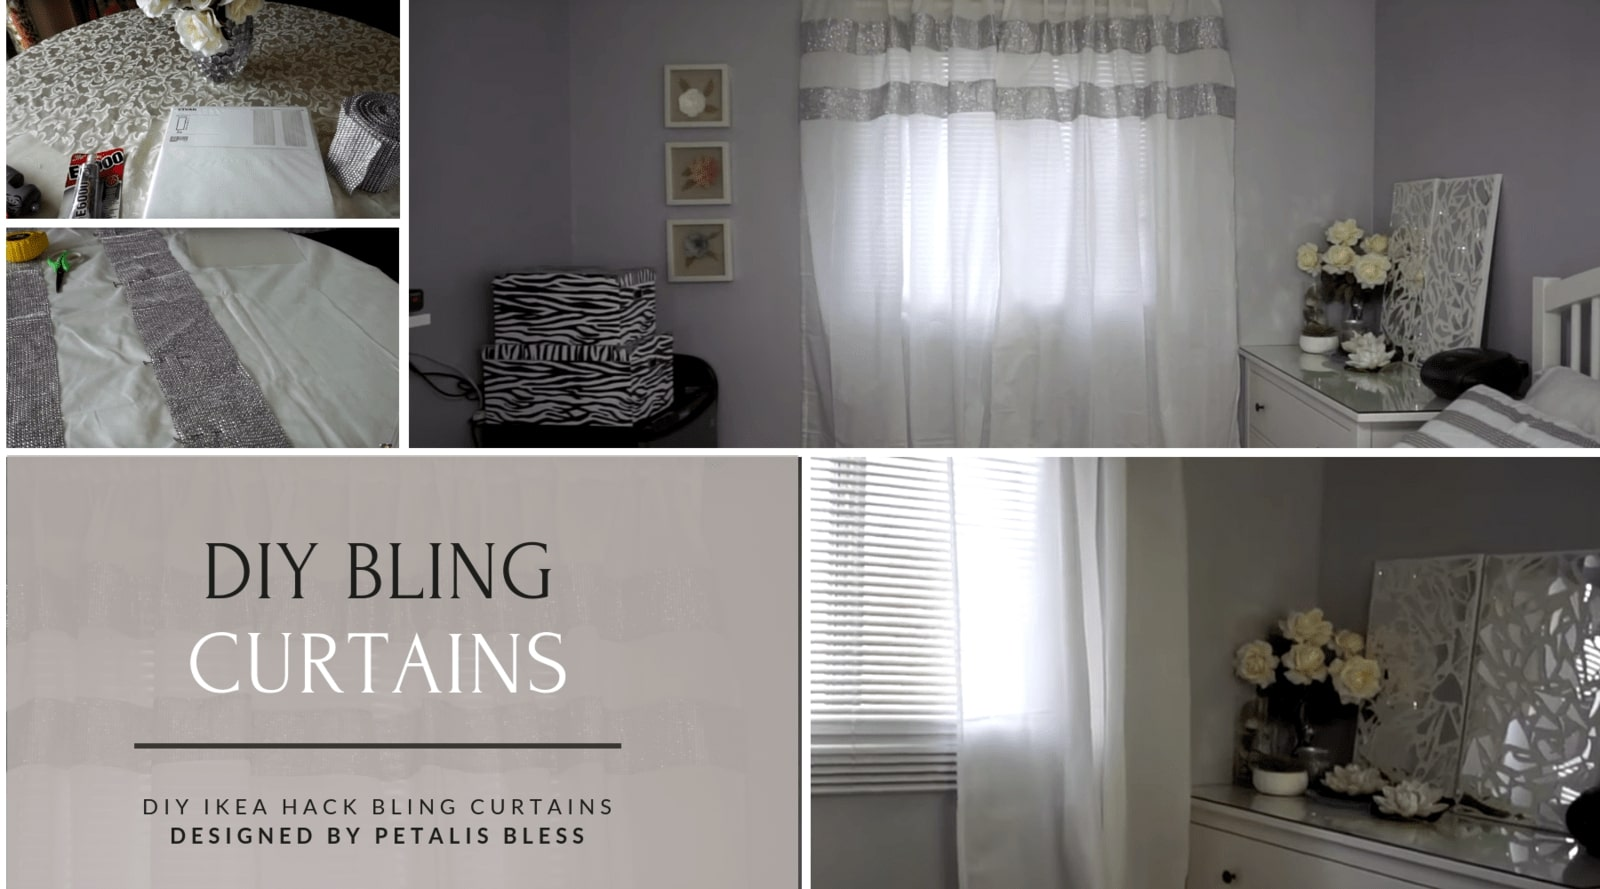 Petalis_Bless_Bling_Curtains